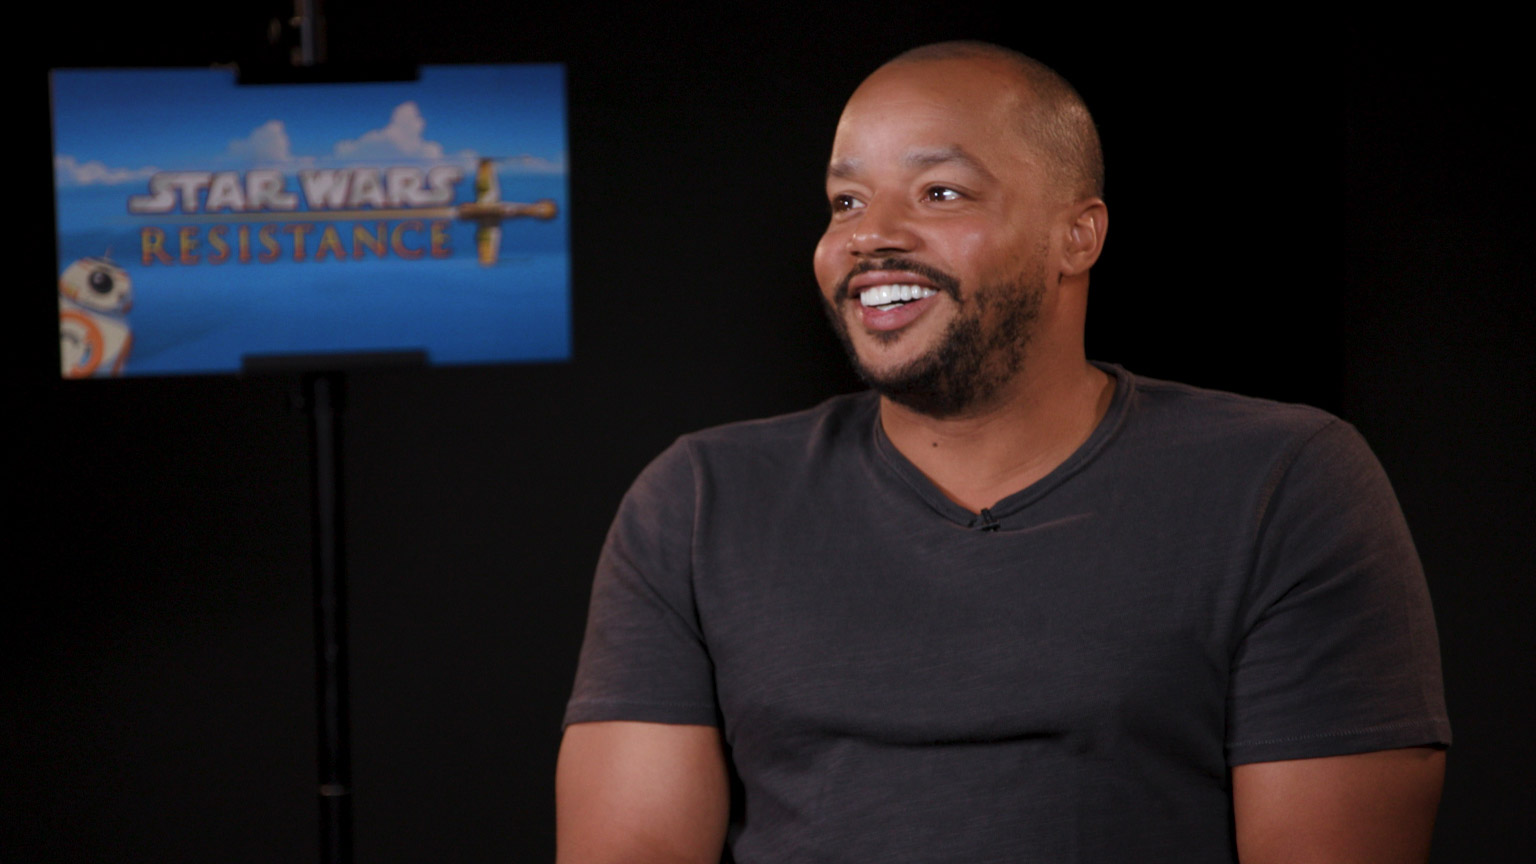 Donald Faison talks about his role in Star Wars Resistance.